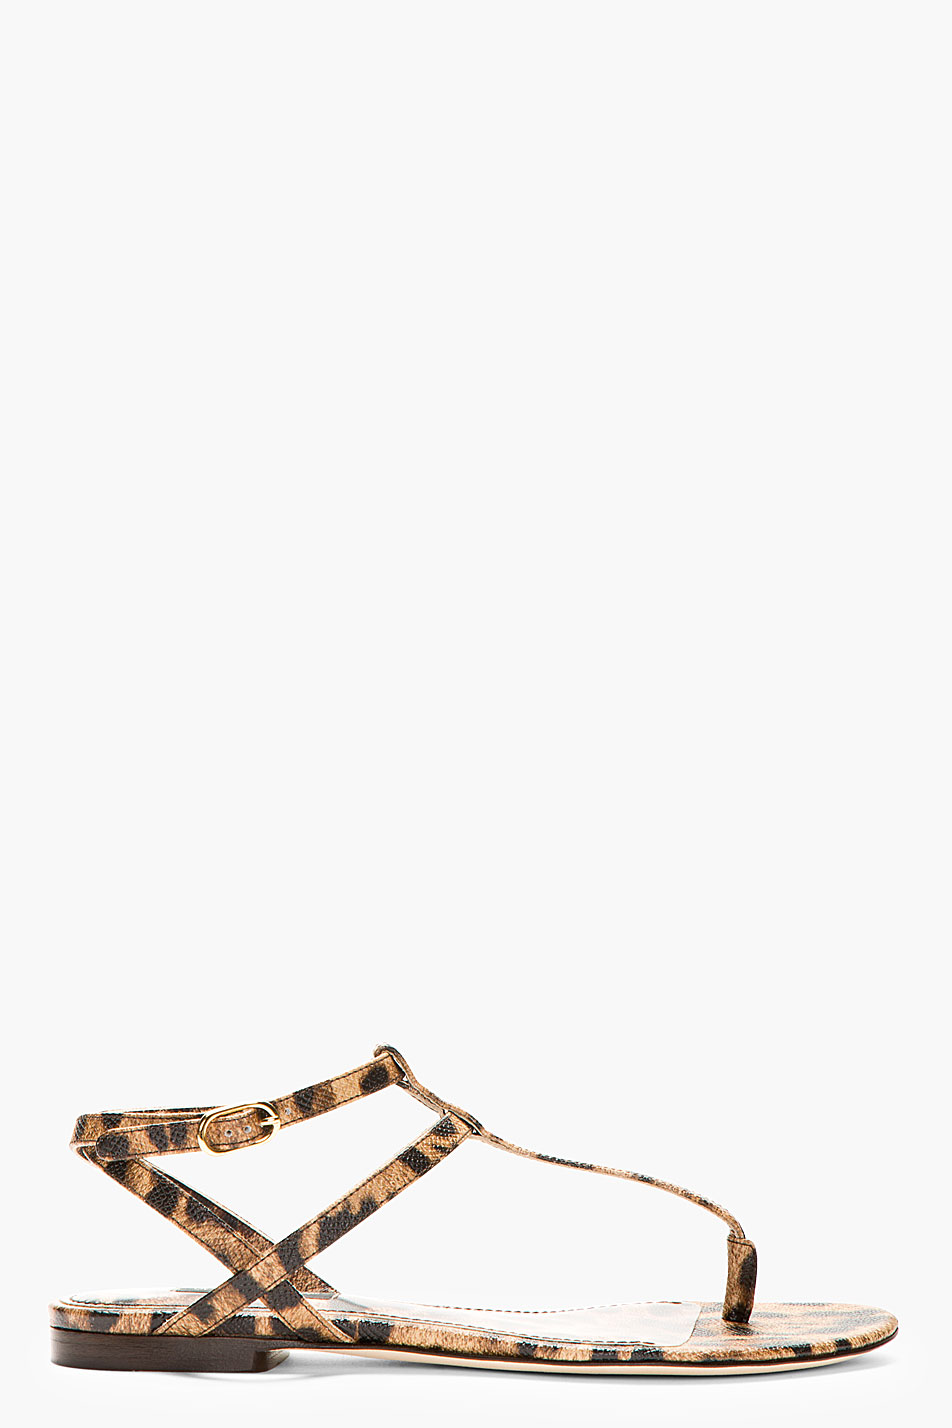 Dolce and gabbana brown leather leopard spot flat sandals